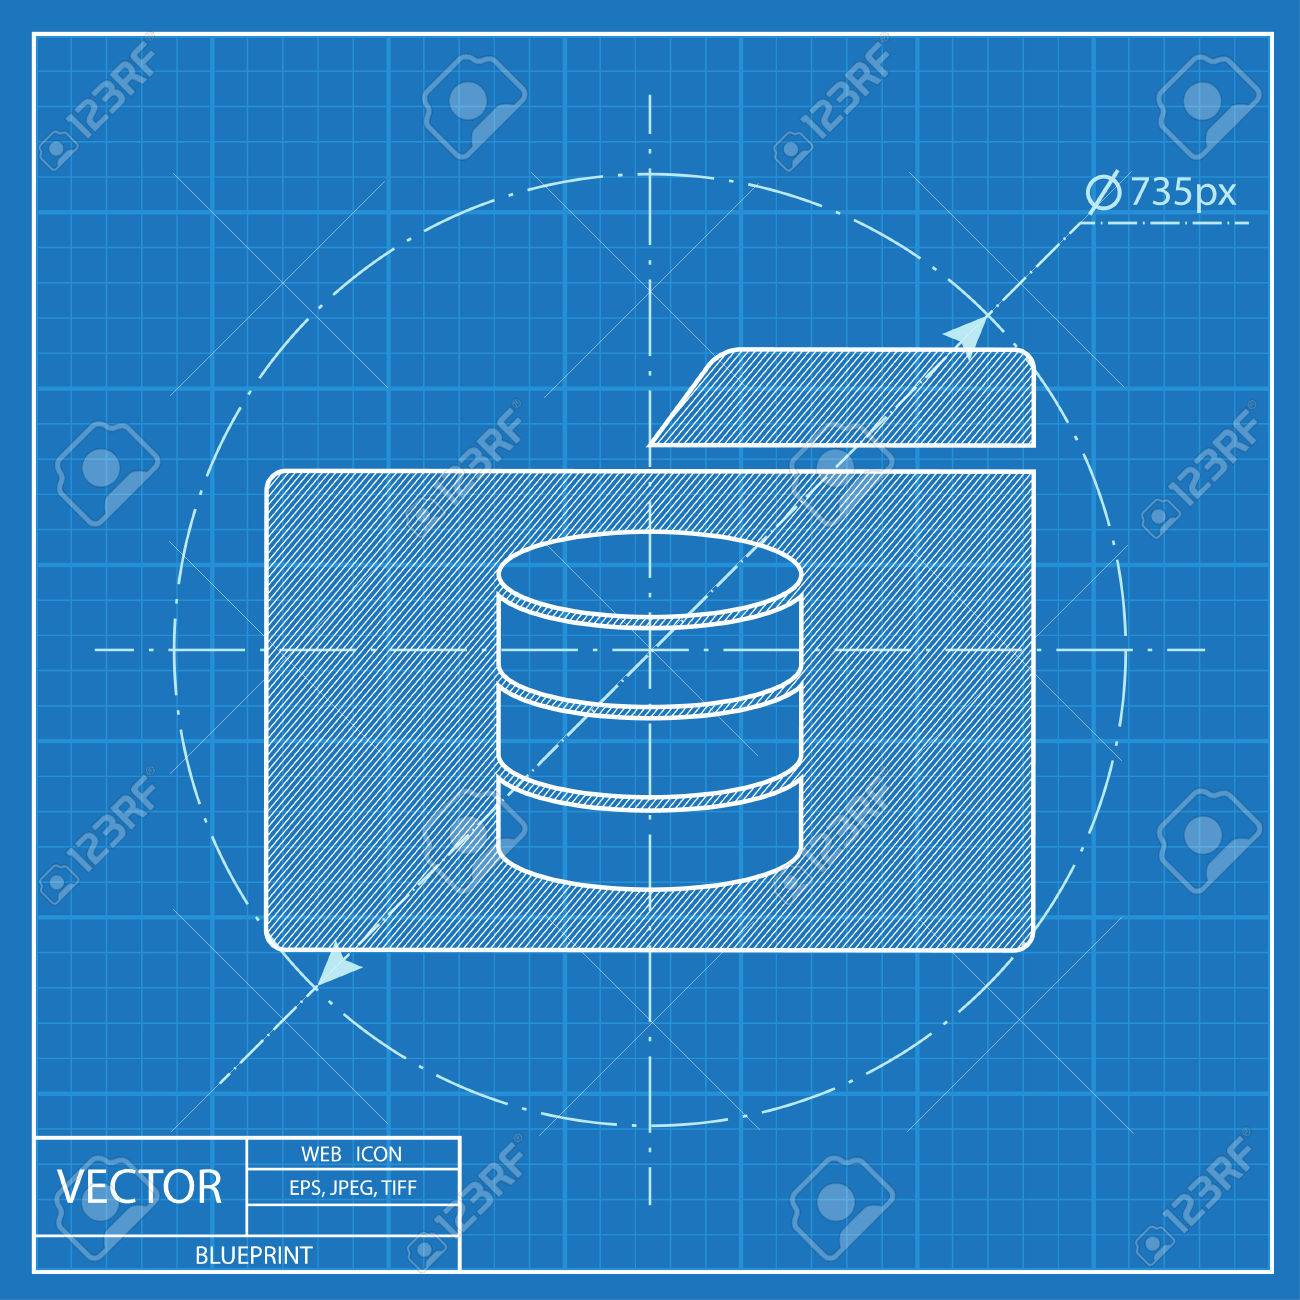 Fantastic blueprint database contemporary electrical and wiring database folder blueprint style royalty free cliparts vectors malvernweather Gallery